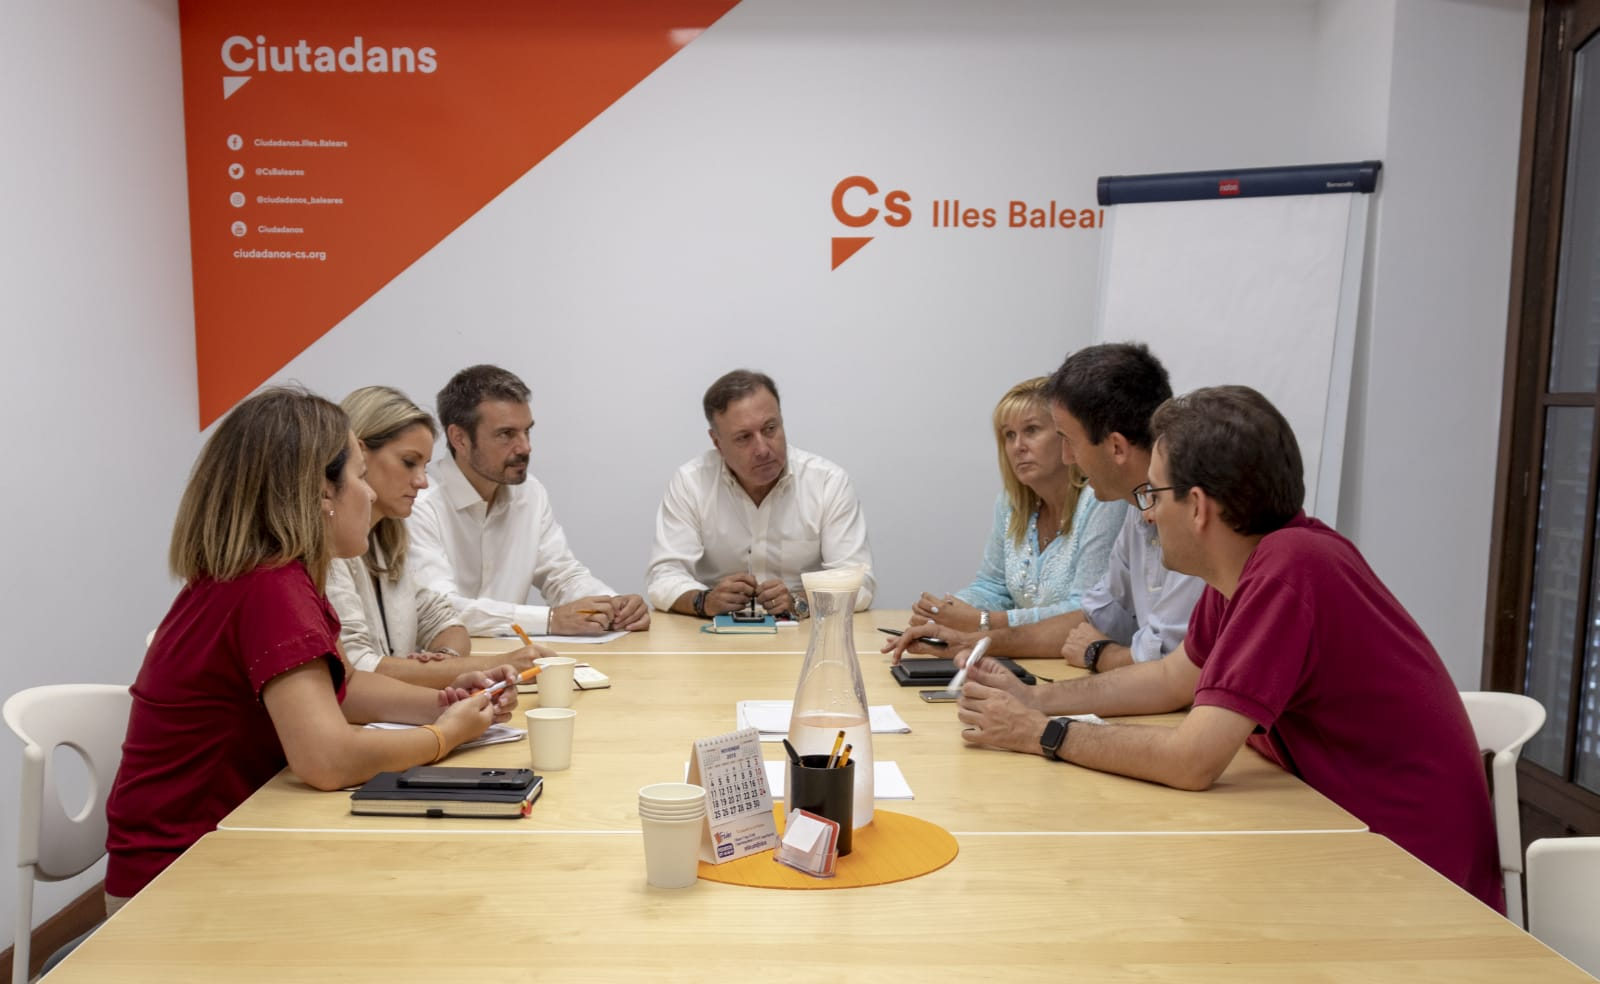 http://baleares.ciudadanos-cs.org/wp-content/uploads/sites/27/2019/10/001.jpg